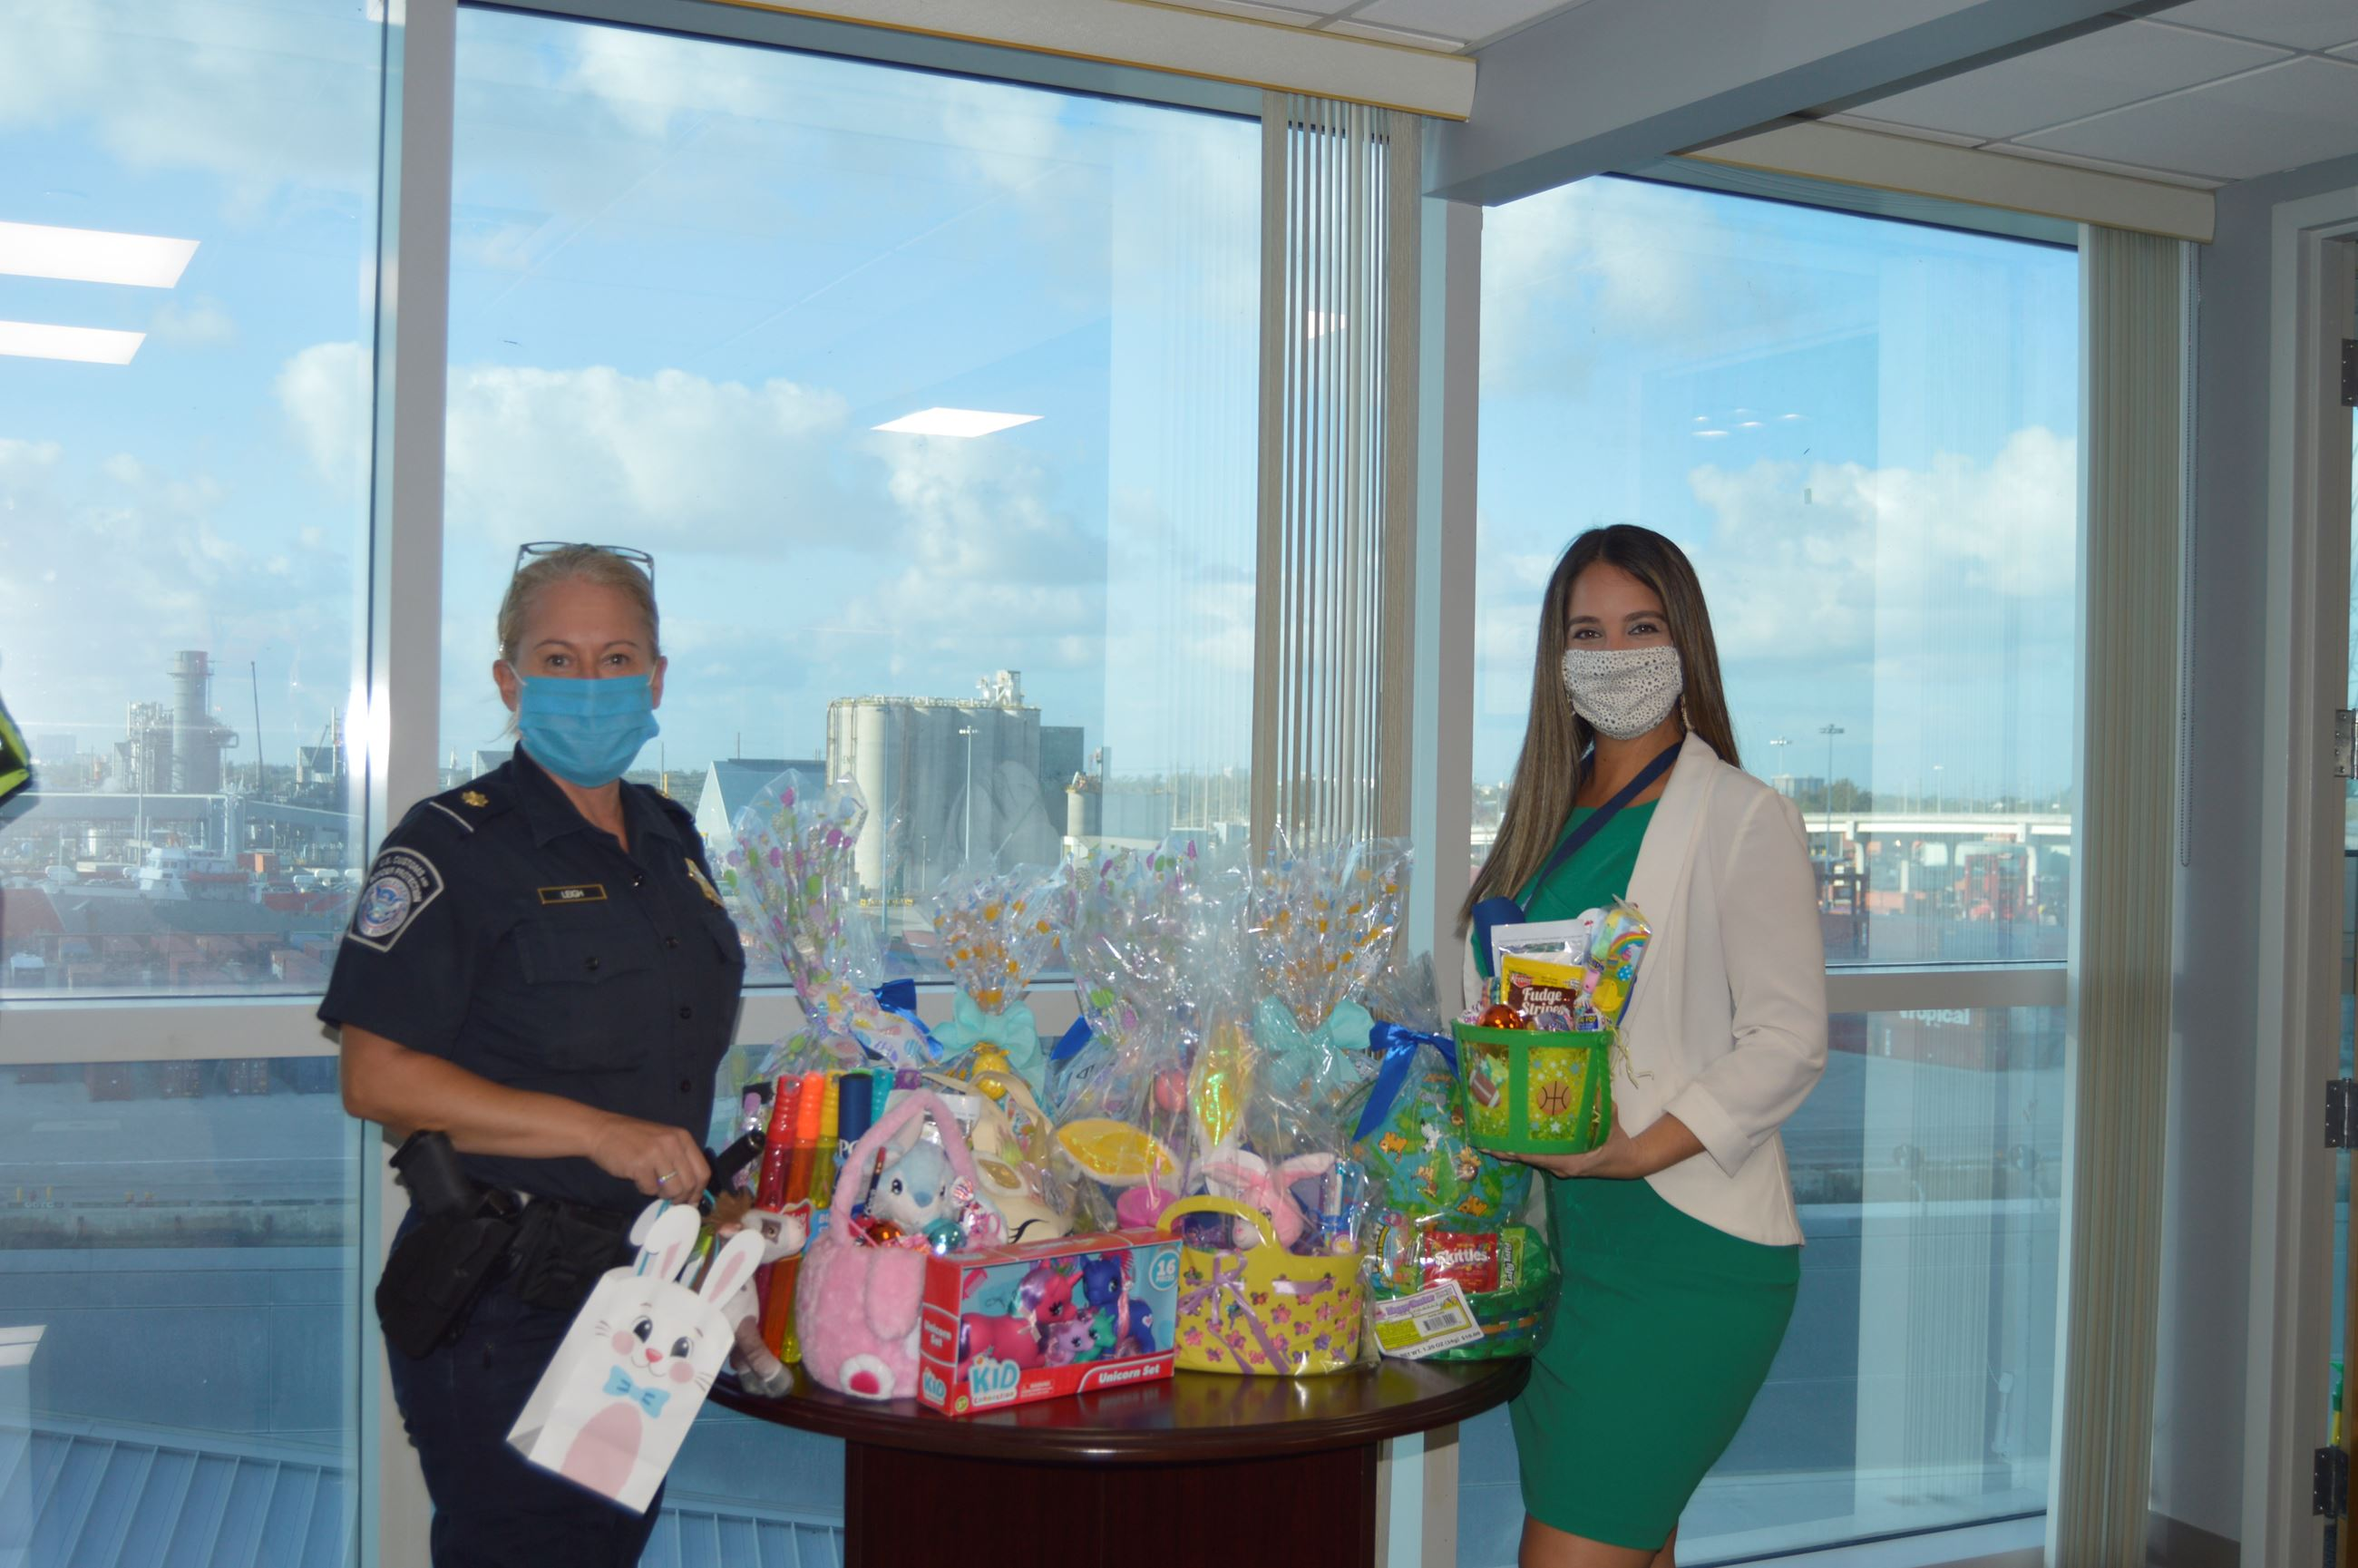 CBP's  Supervisory CBP Officer/ Chief of Staff Deirdre Leigh donating Easter goodies